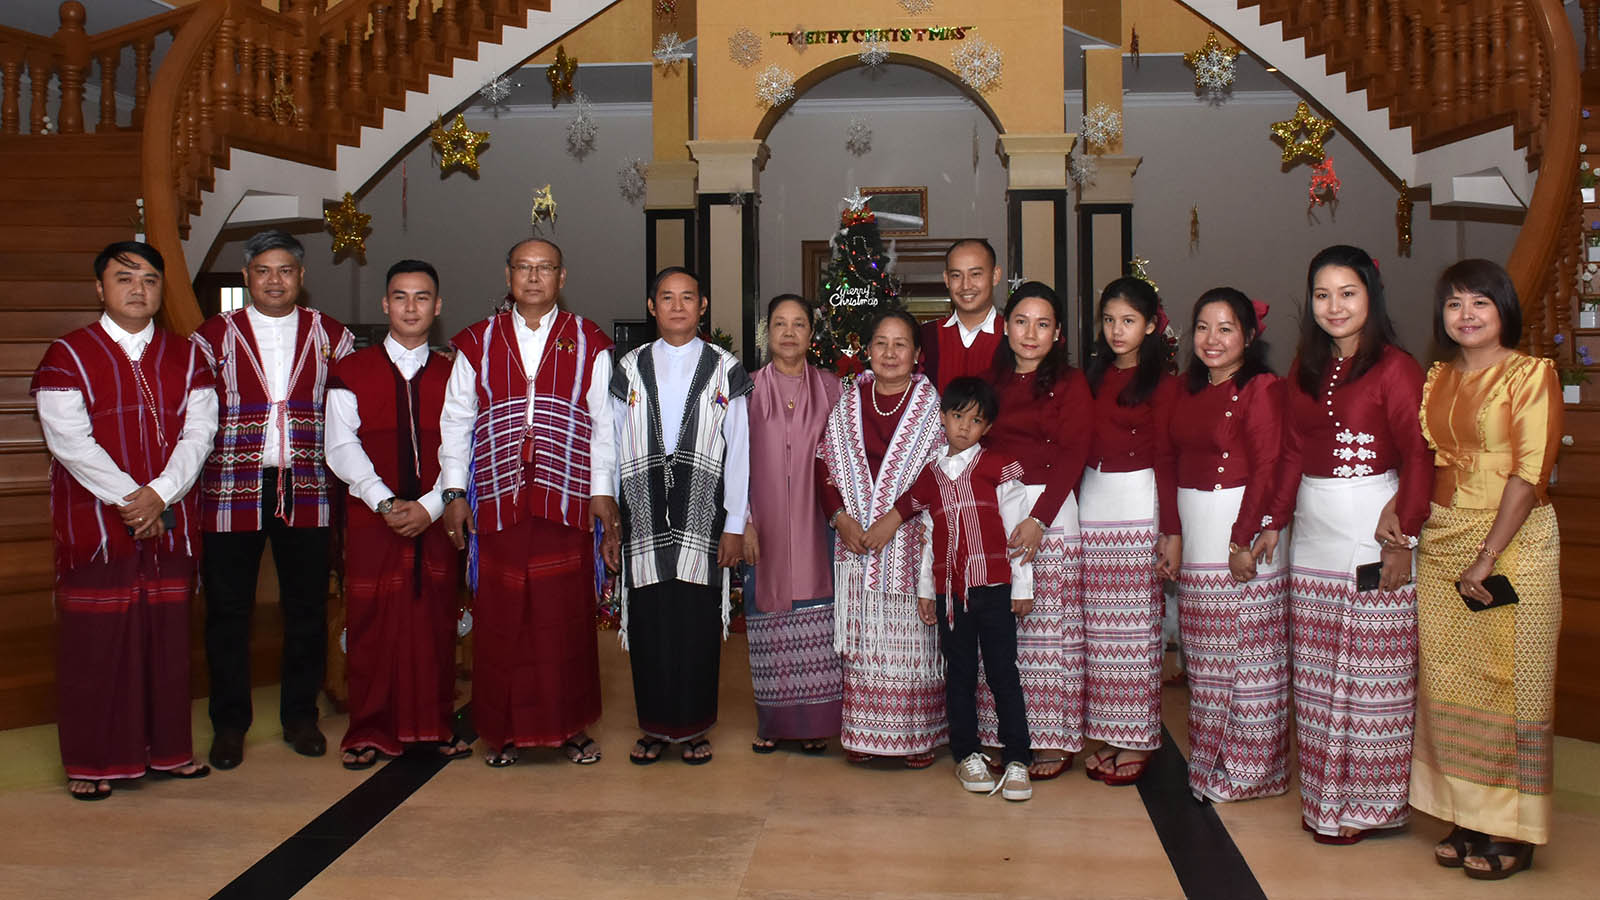 President U Win Myint, First Lady Daw Cho Cho, Amyotha Hluttaw Speaker Mahn Win Khaing Than, wife Nant Kyin Kyi and family pose for a documentary photo at the Christmas celebrations in Nay Pyi Taw yesterday. Photo: MNA